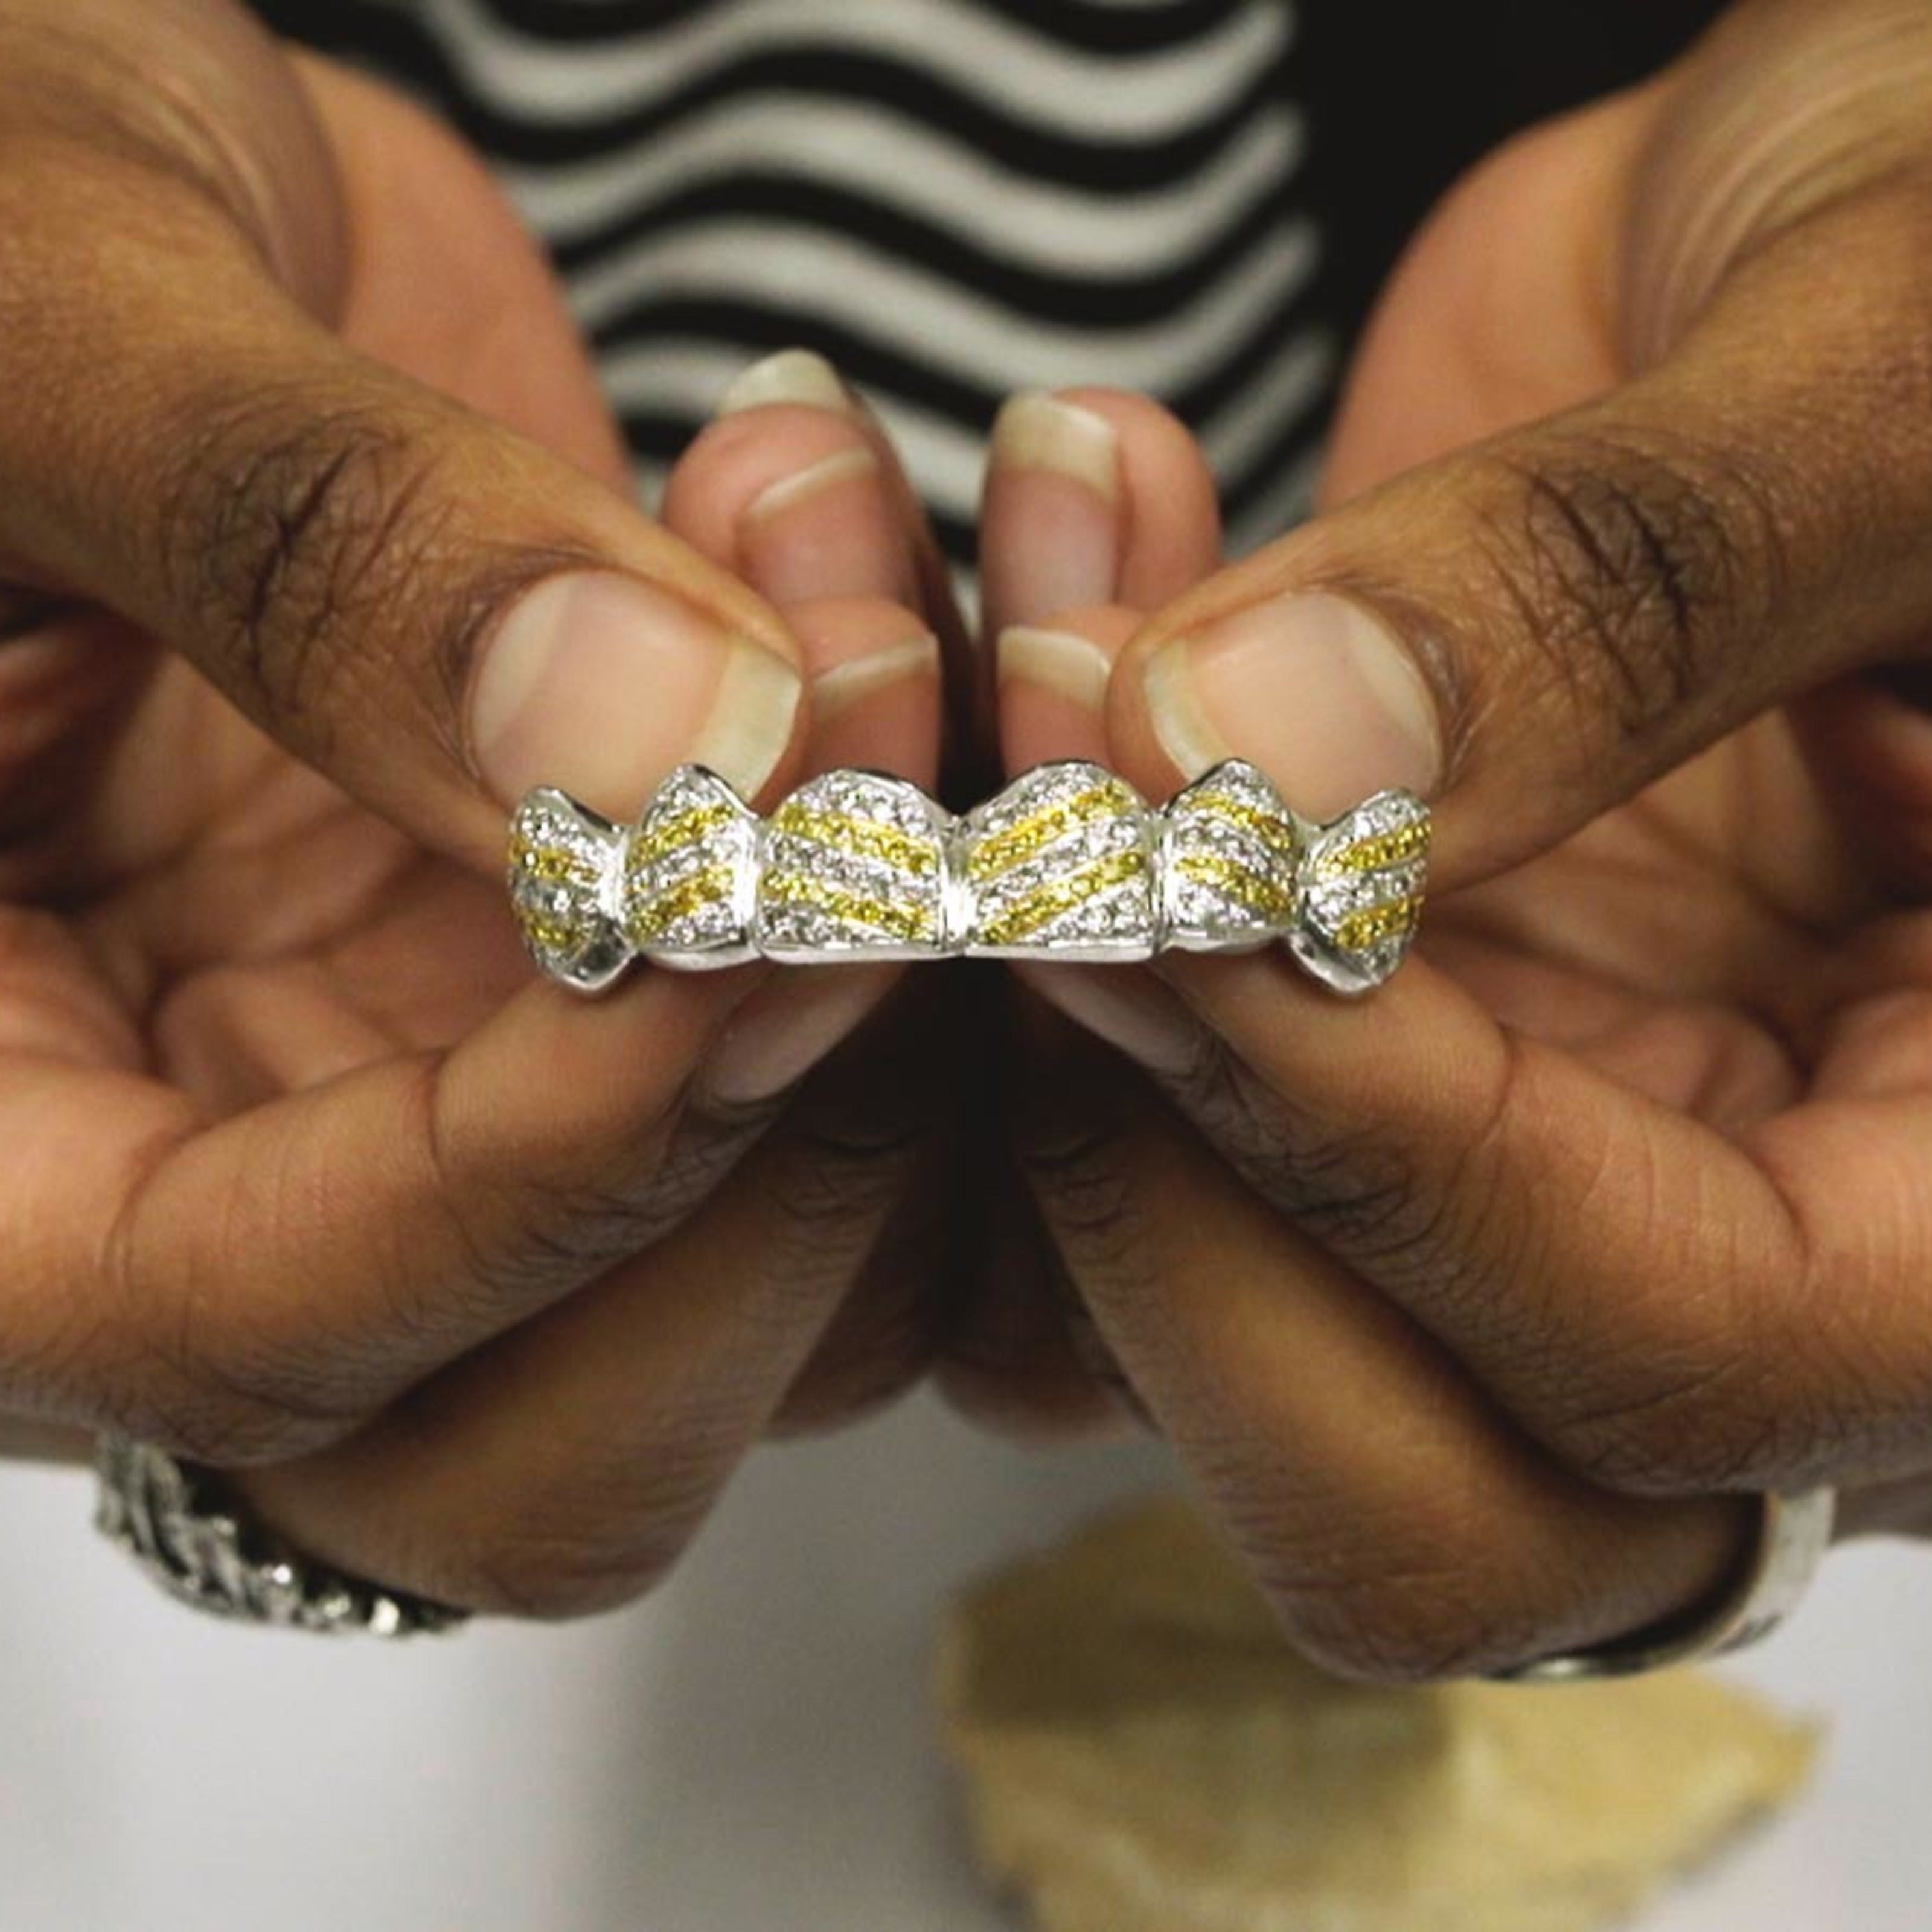 a pair of hands presenting a jewel encrusted grill for the mouth